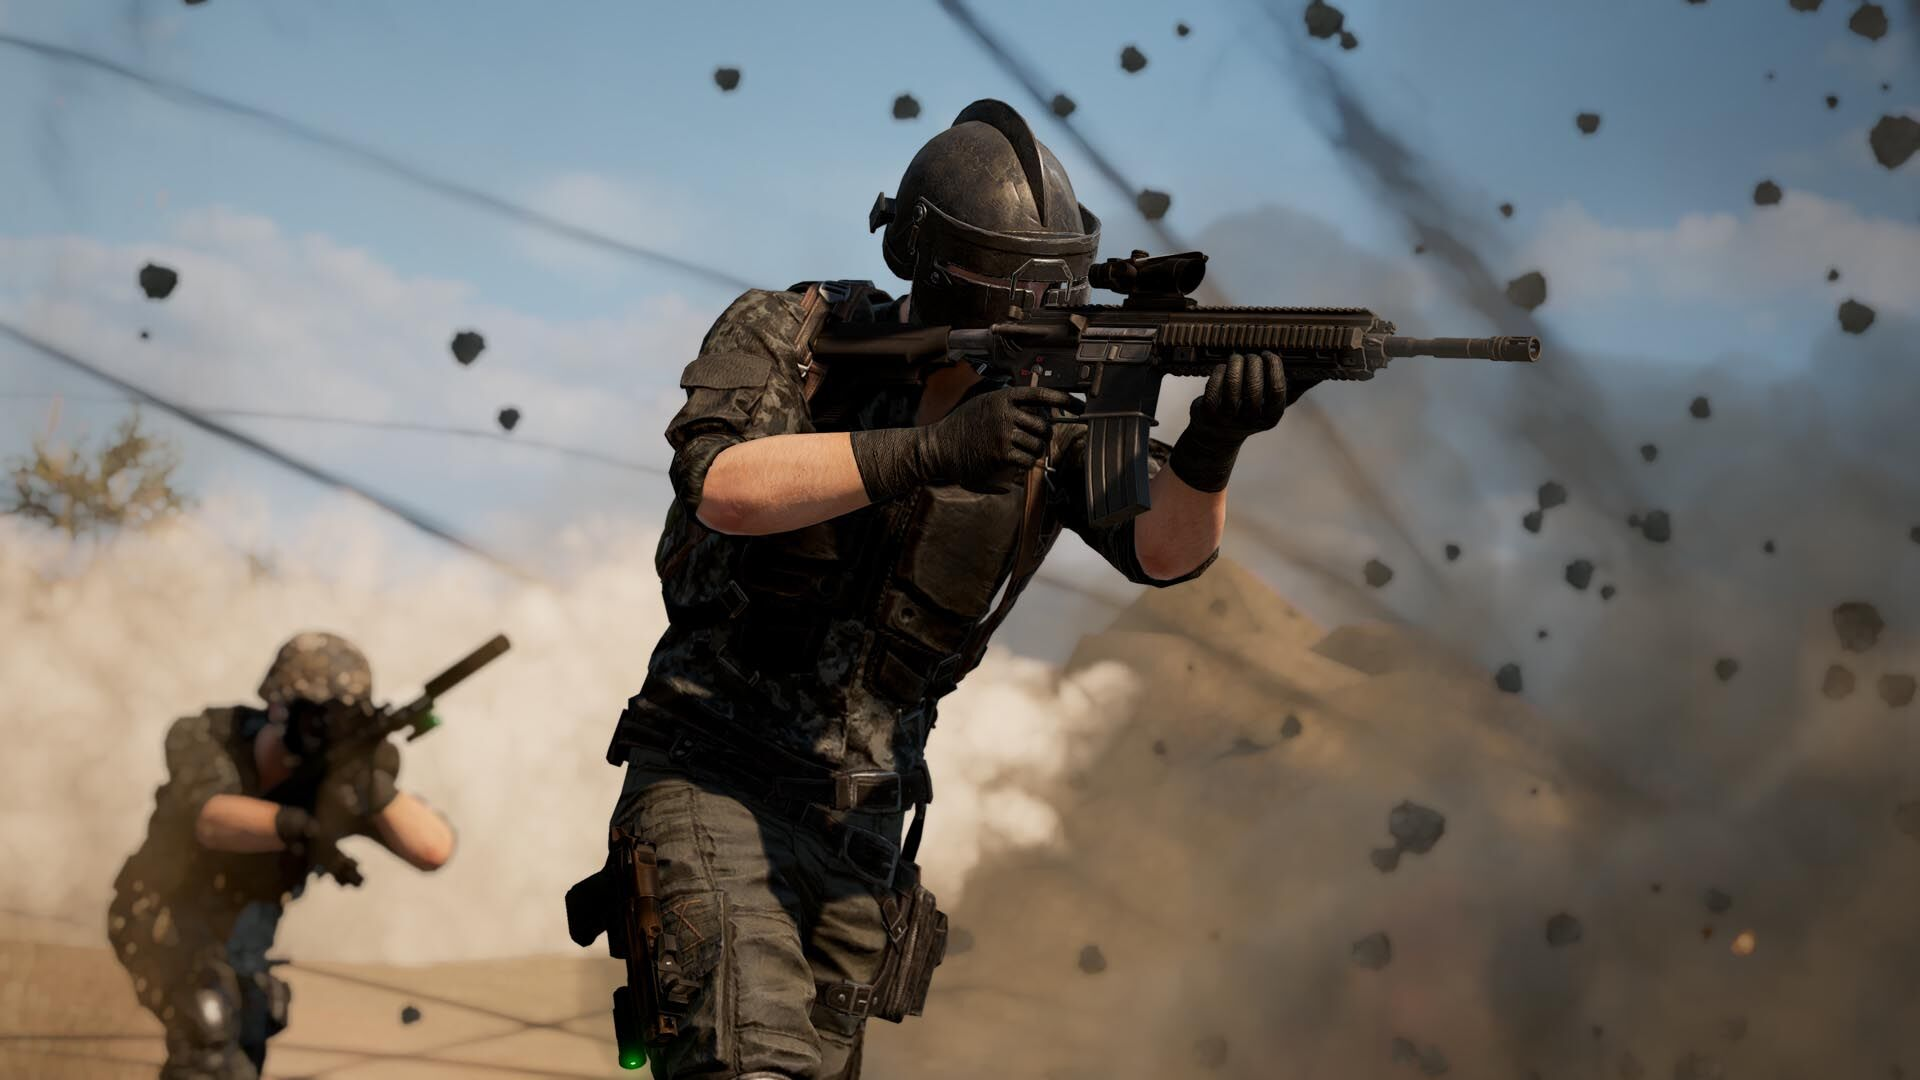 Exploring Karakin: PUBG's latest map loaded with new features